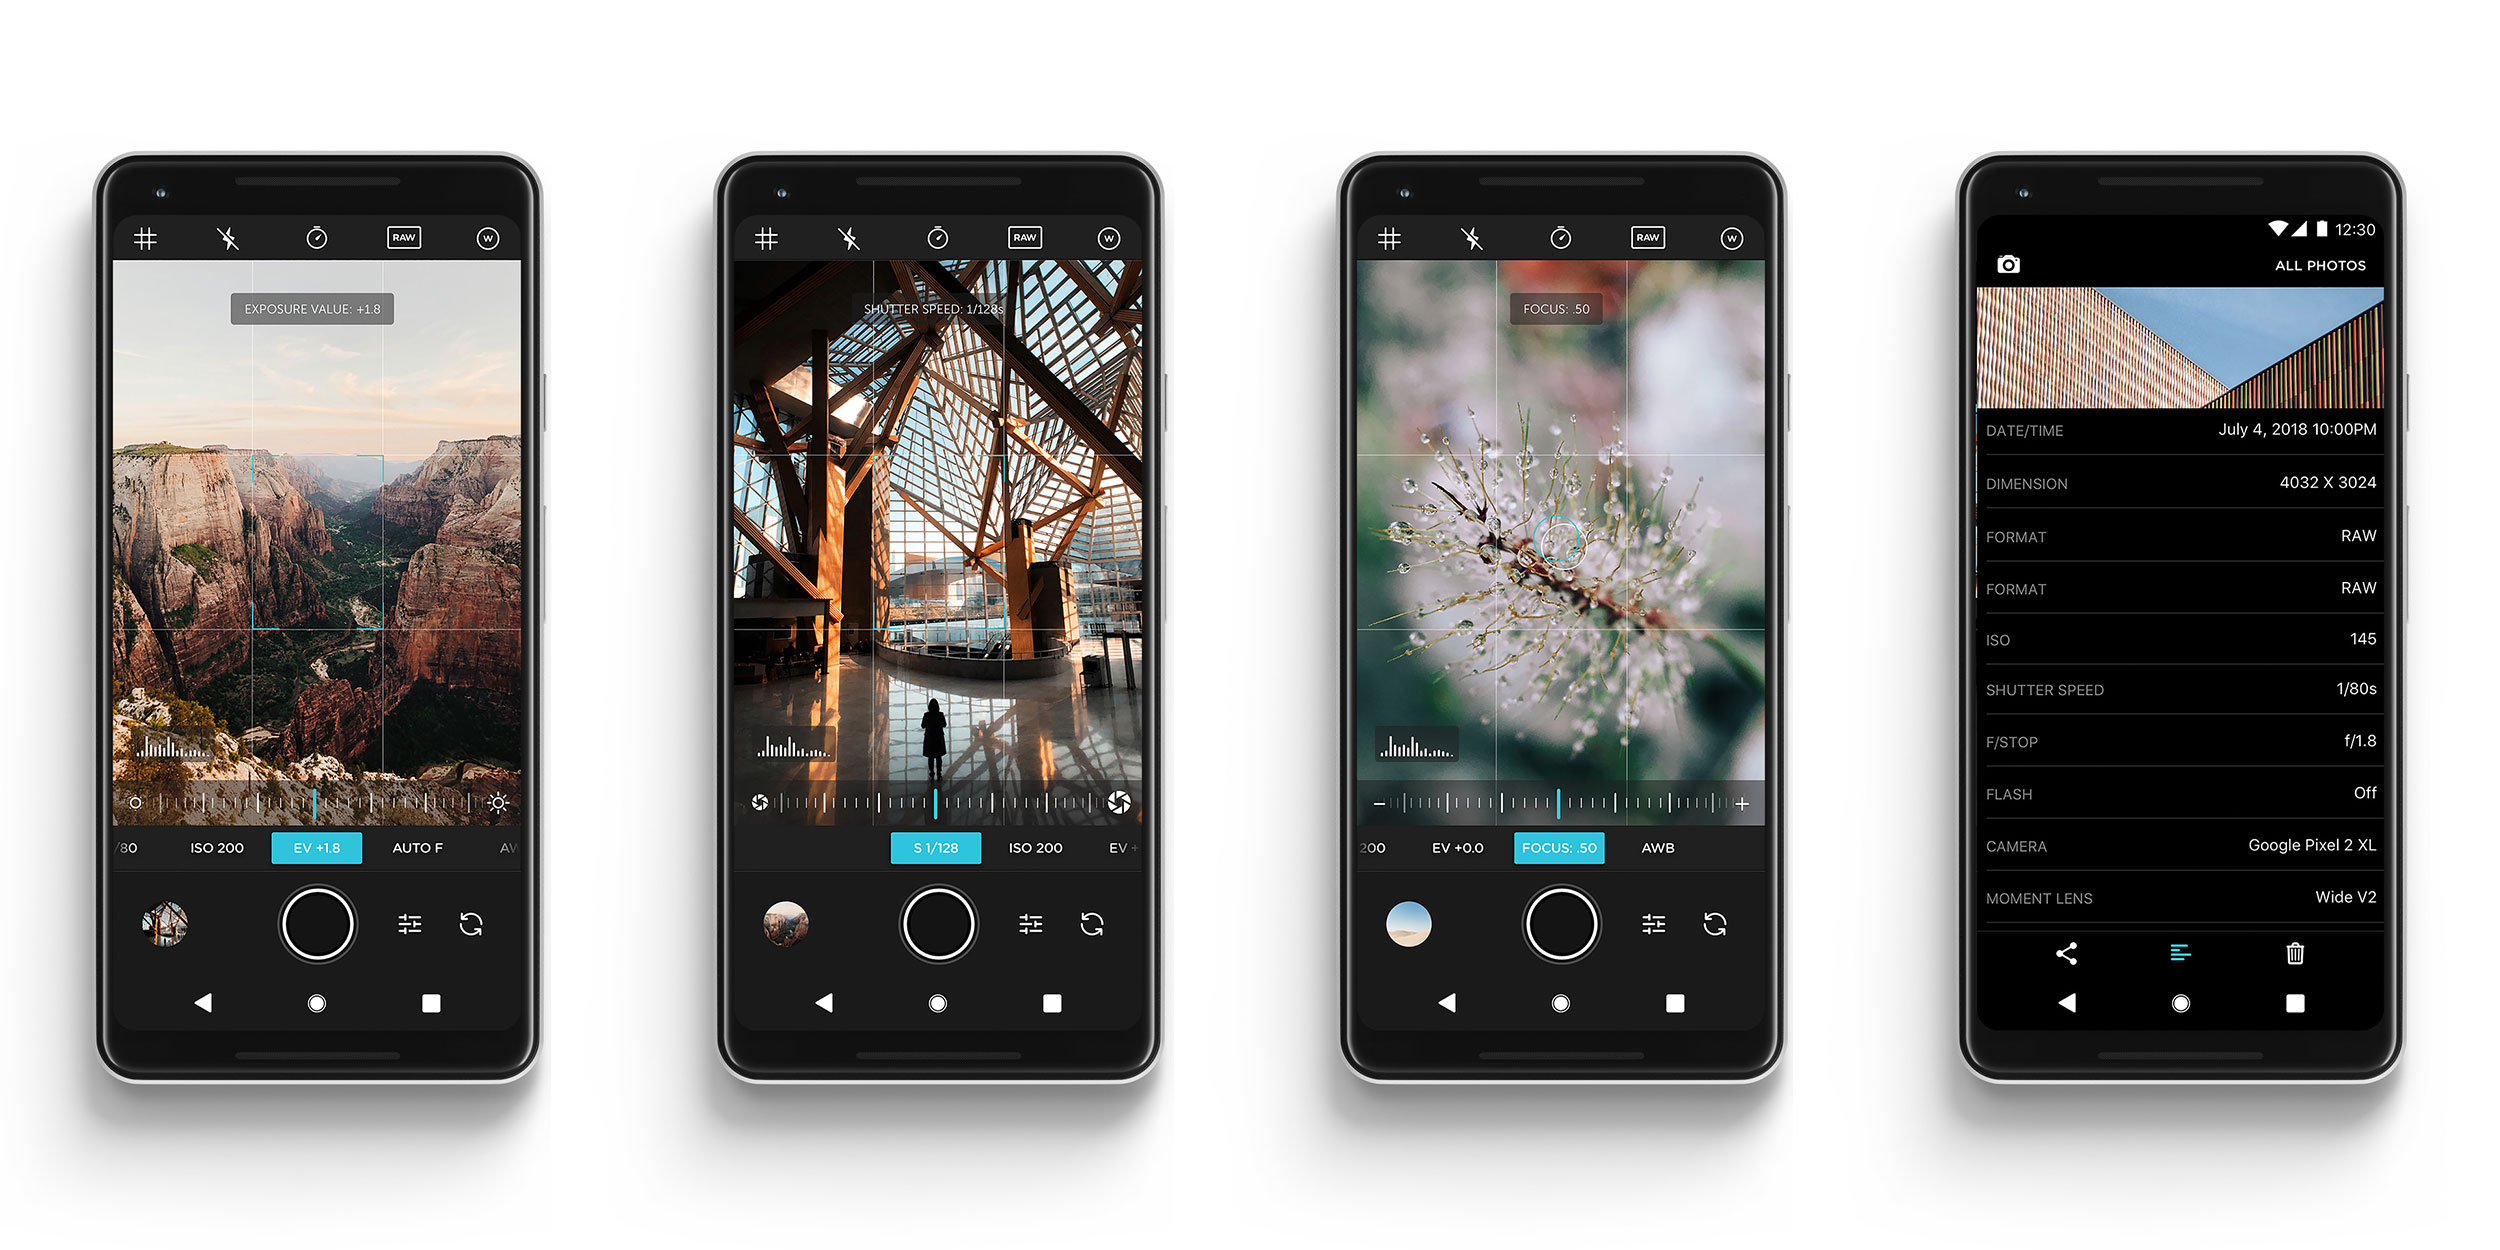 Moment Pro Camera' brings full manual camera controls to